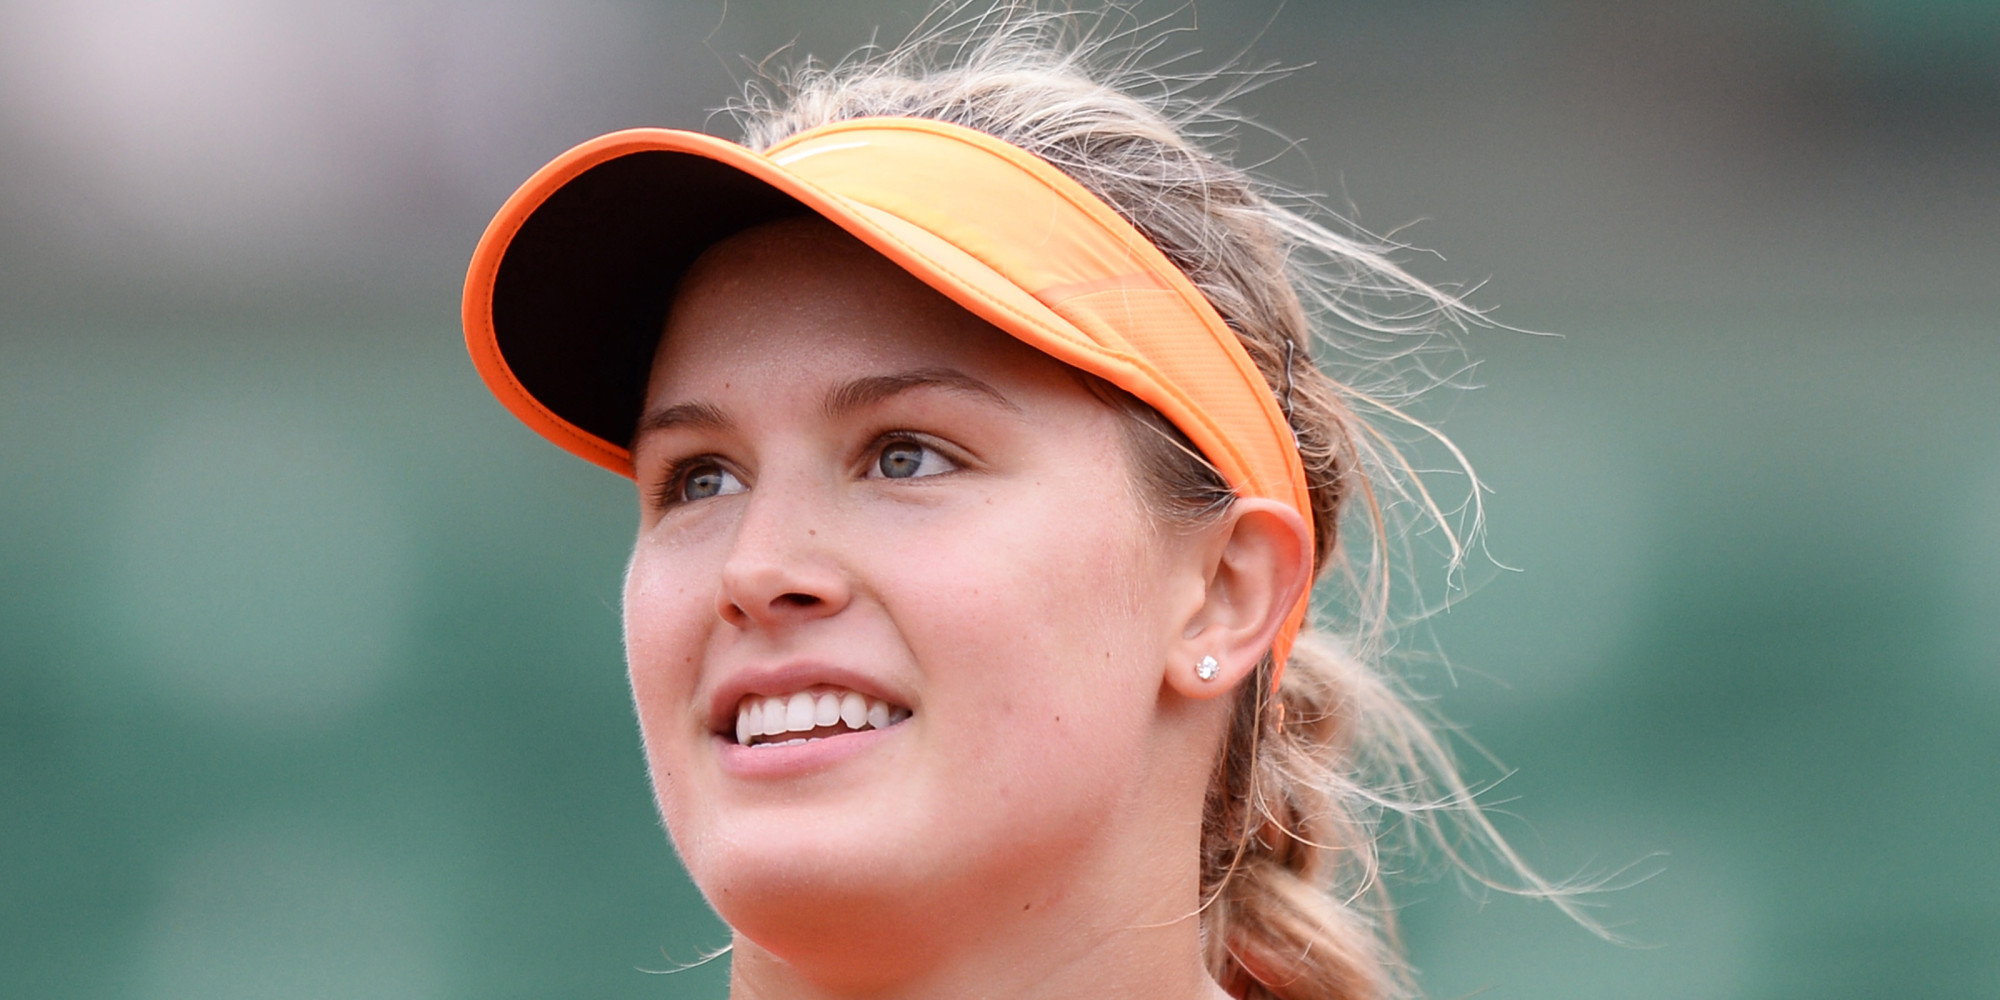 Desktop Eugenie Bouchard Beautiful Look Hd Background Laptop Free Images